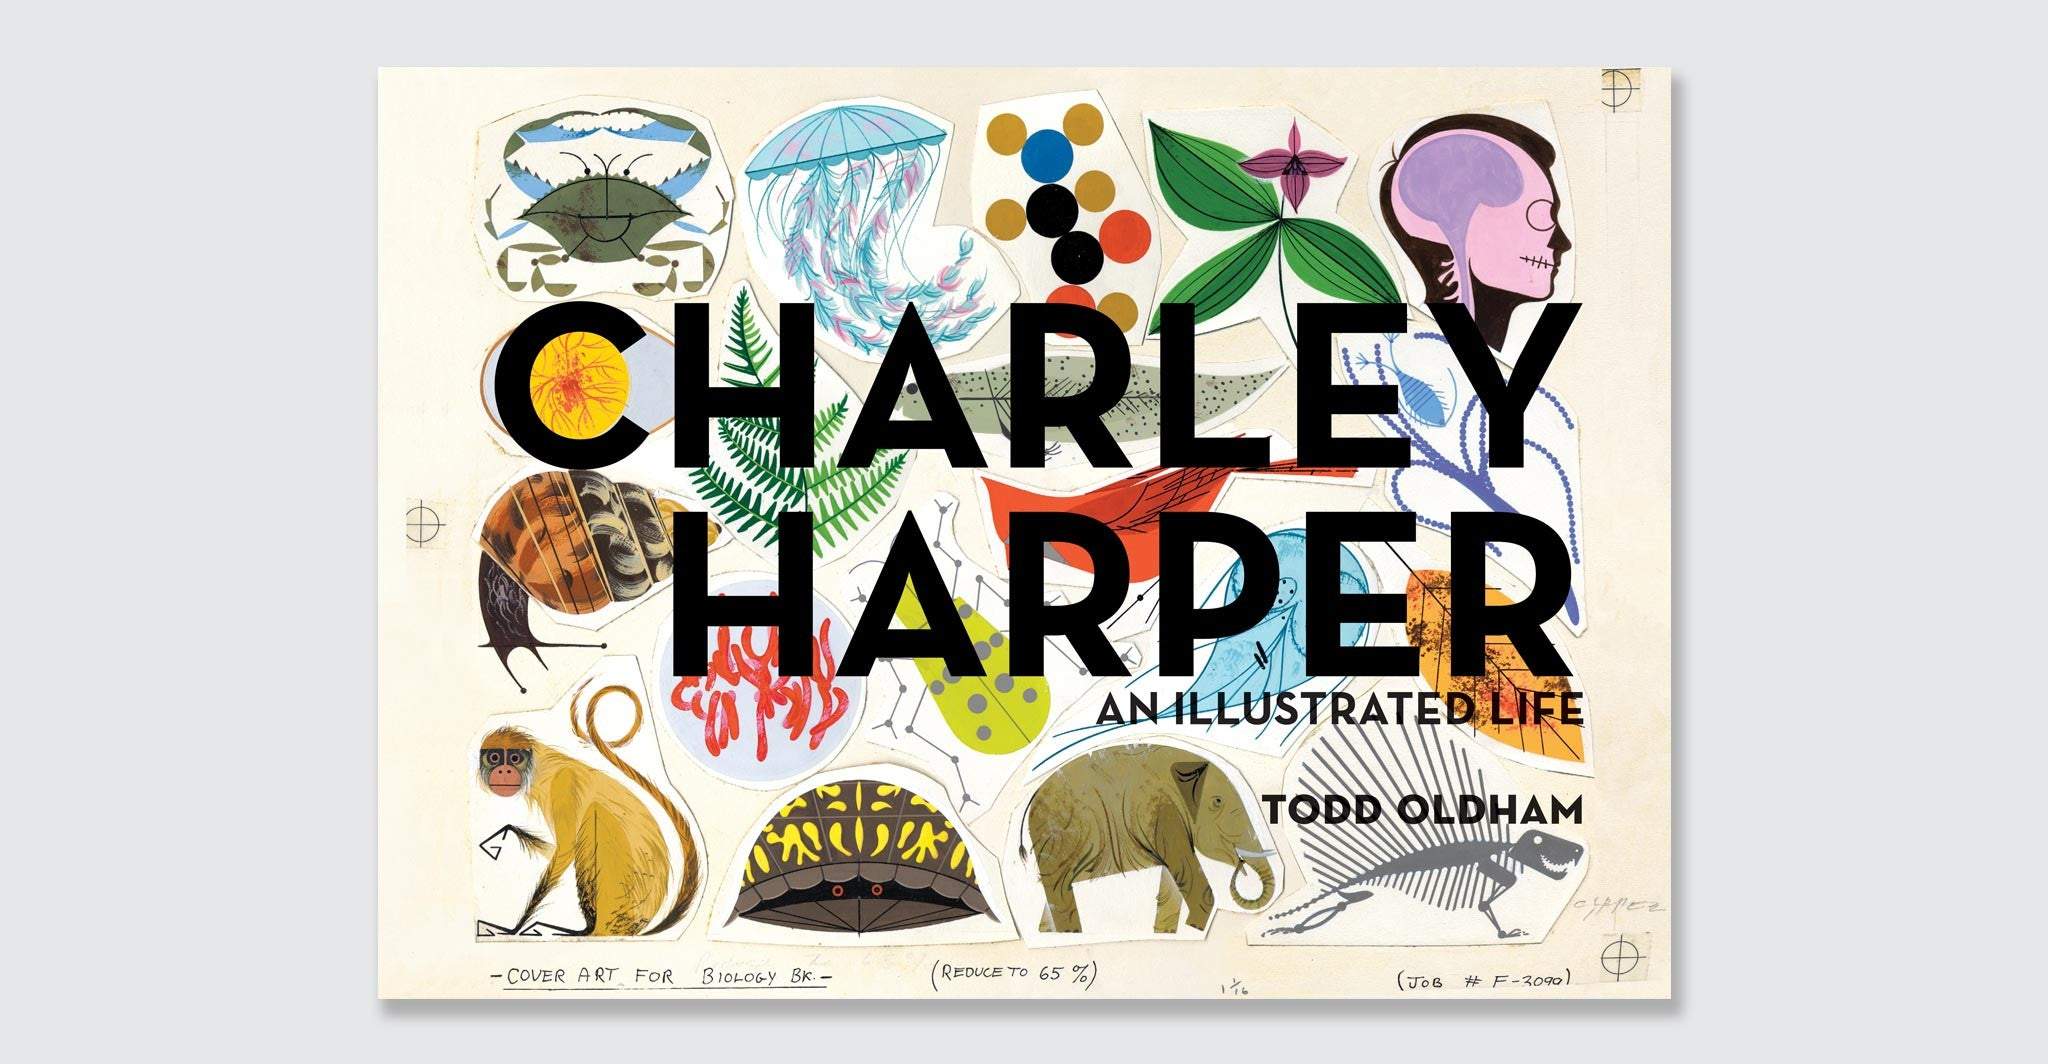 Illustrated Book Cover Number ~ Charley harper illustrated life jumbo hardcover edition by